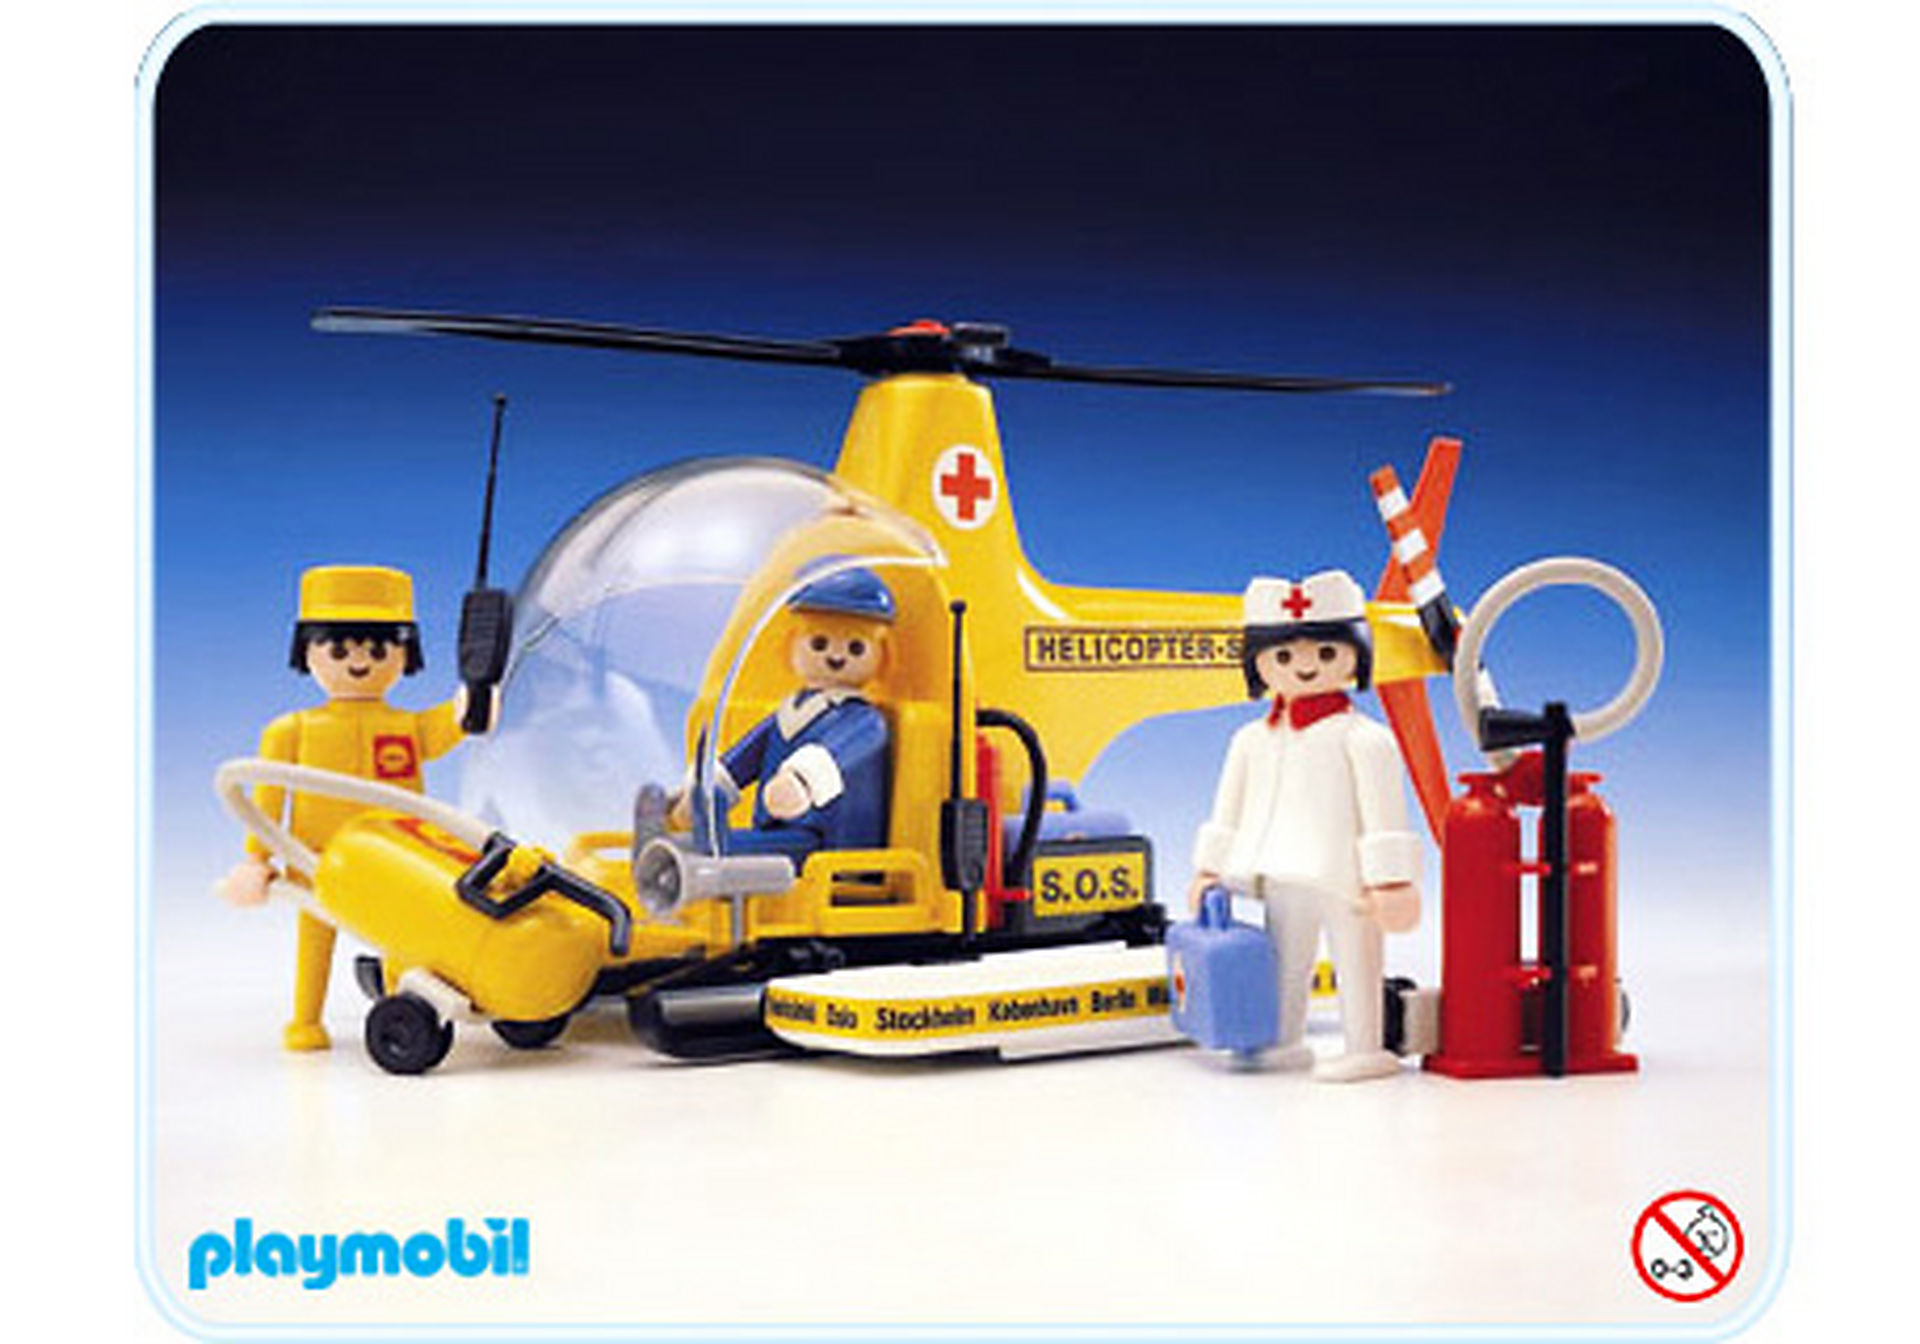 http://media.playmobil.com/i/playmobil/3247-B_product_detail/Helikopter